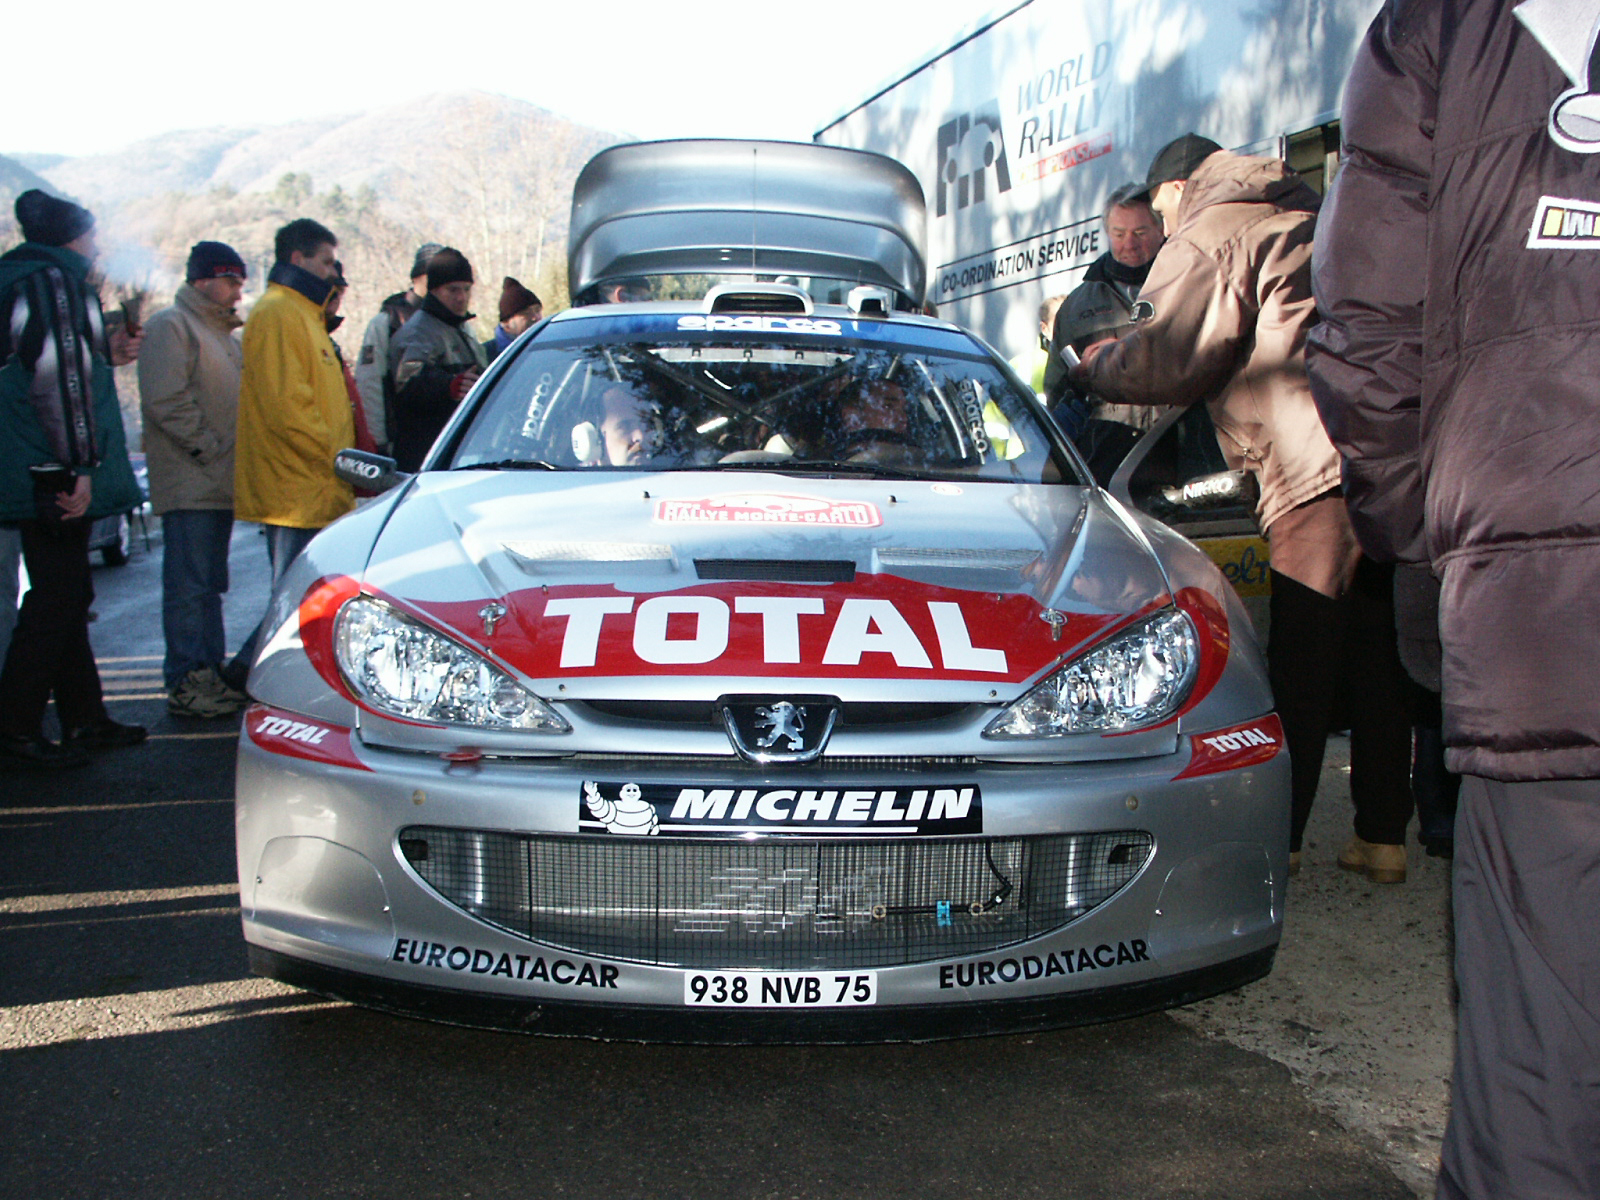 Rallye Monte Carlo 2002 - Peugeot 206 WRC | Flickr - Photo Sharing!